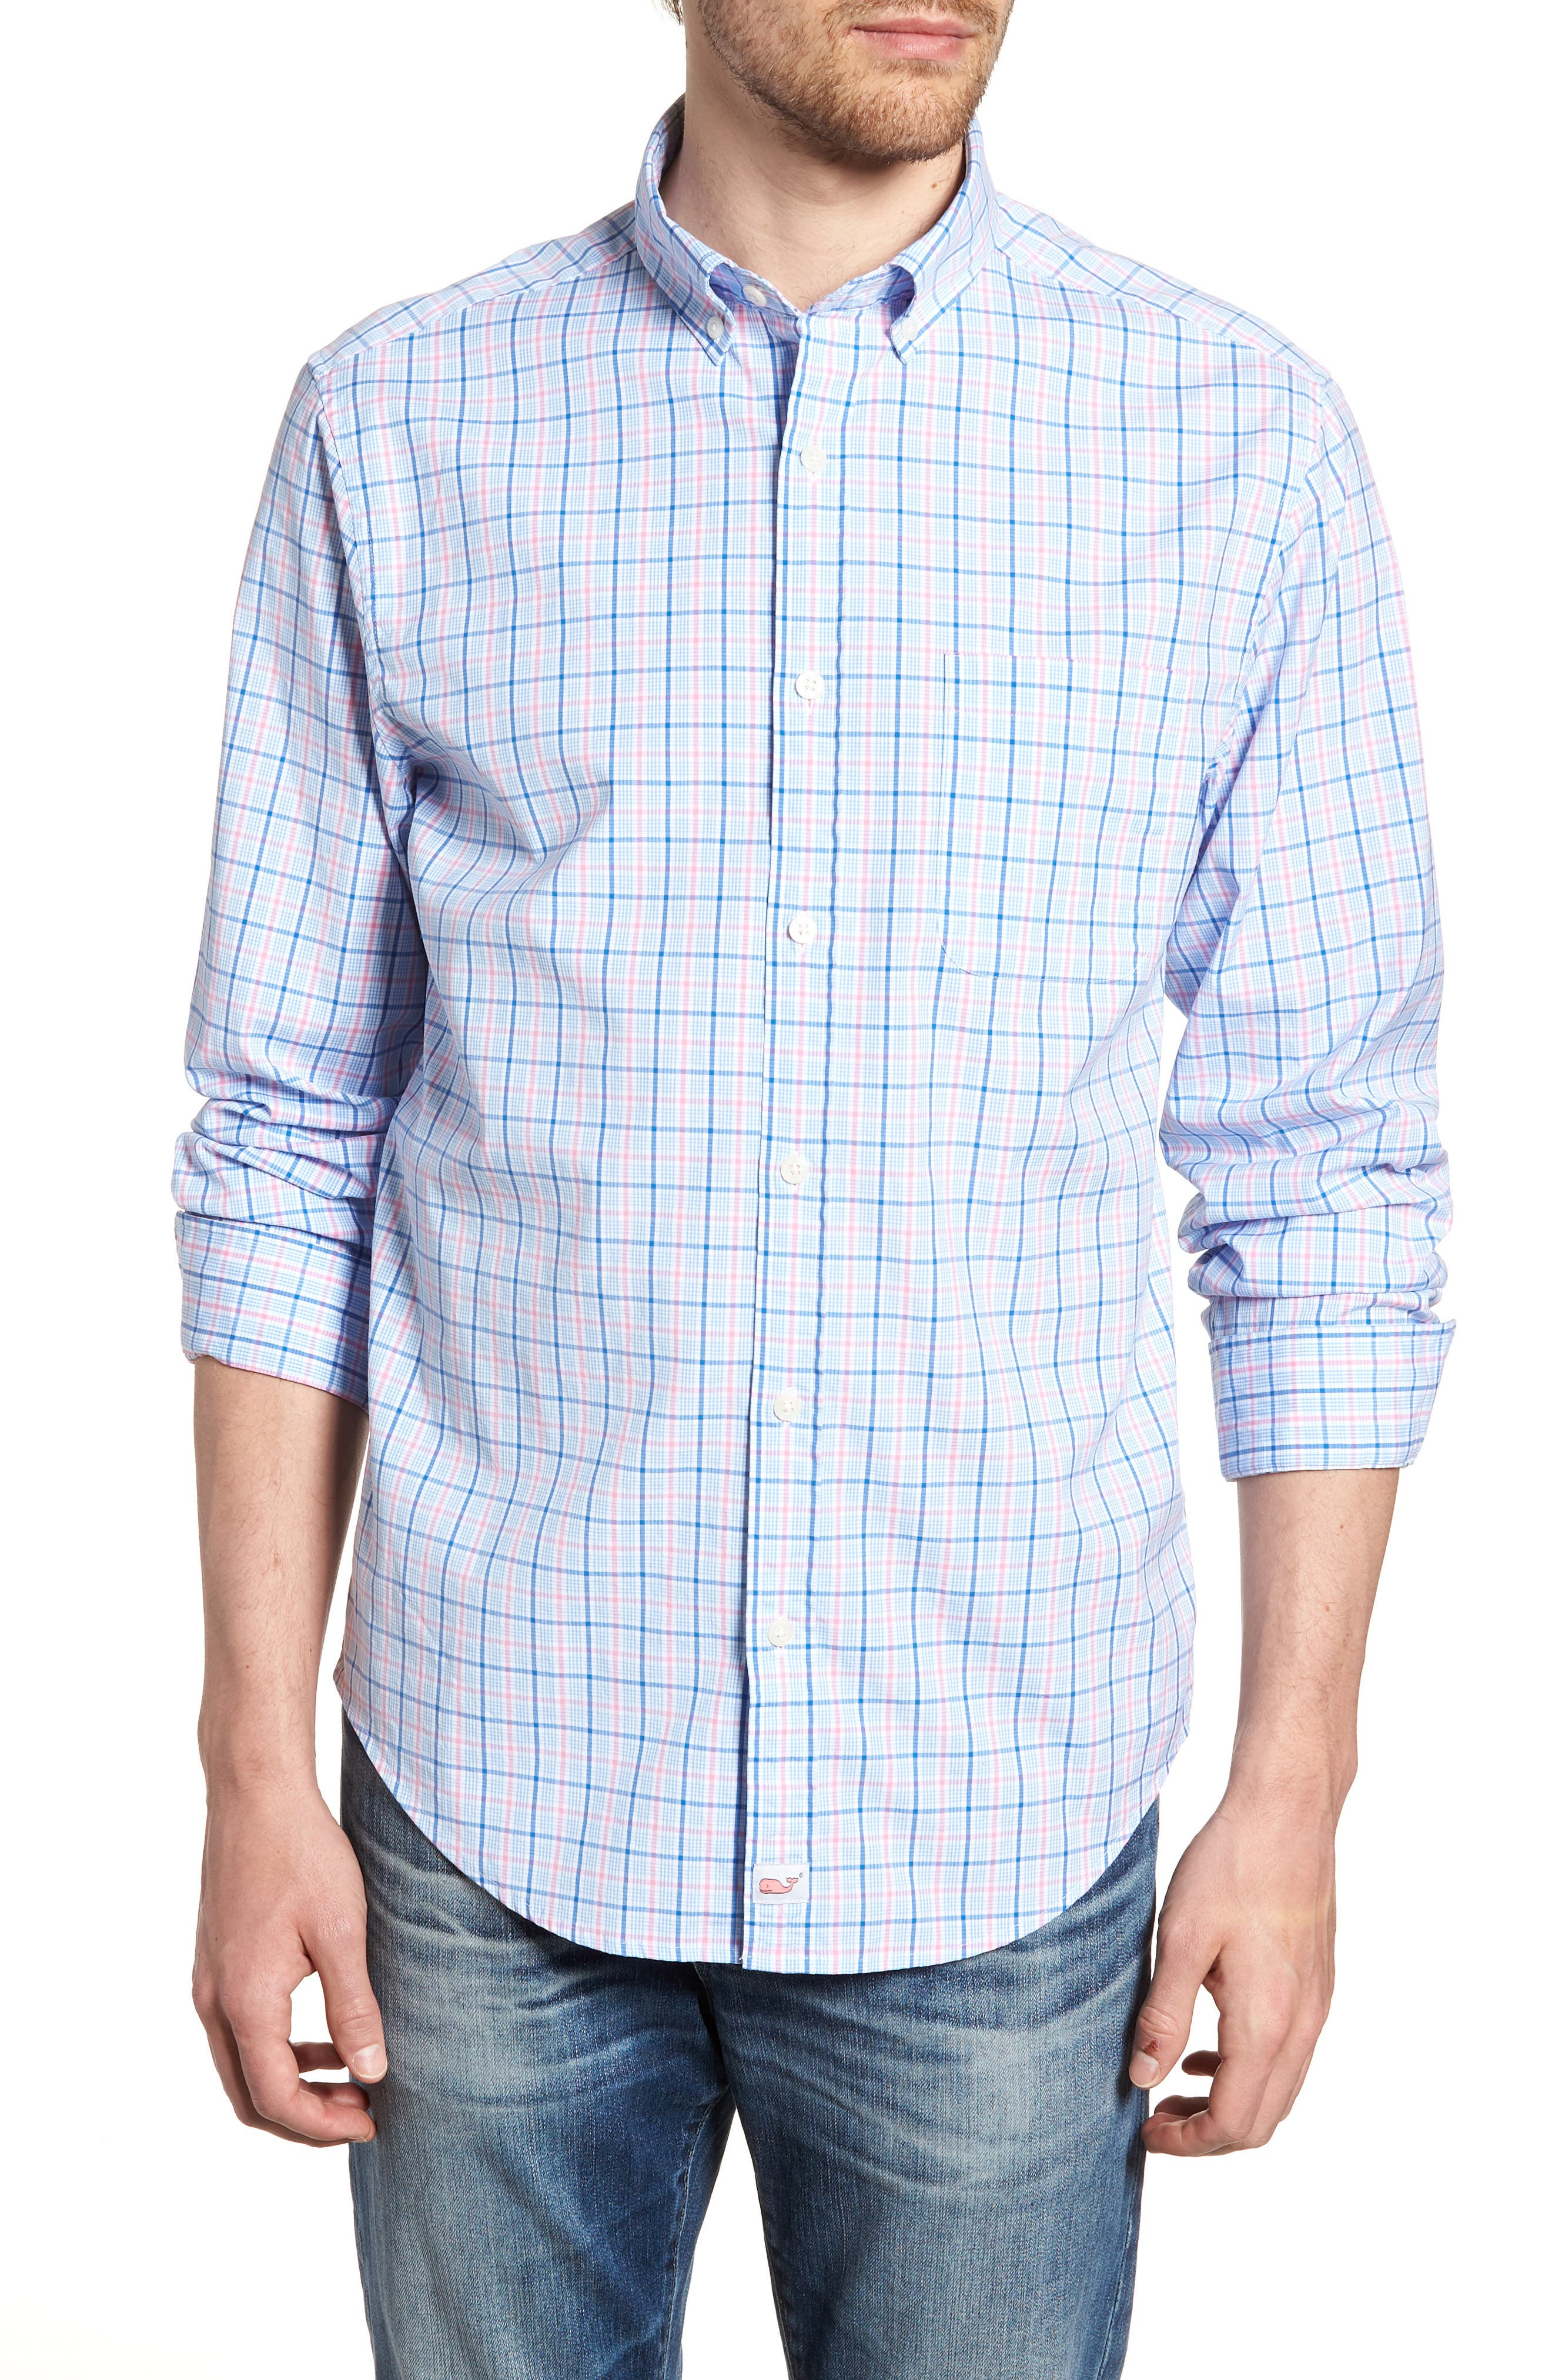 Sir Christie Classic Fit Check Sport Shirt,                             Main thumbnail 1, color,                             427